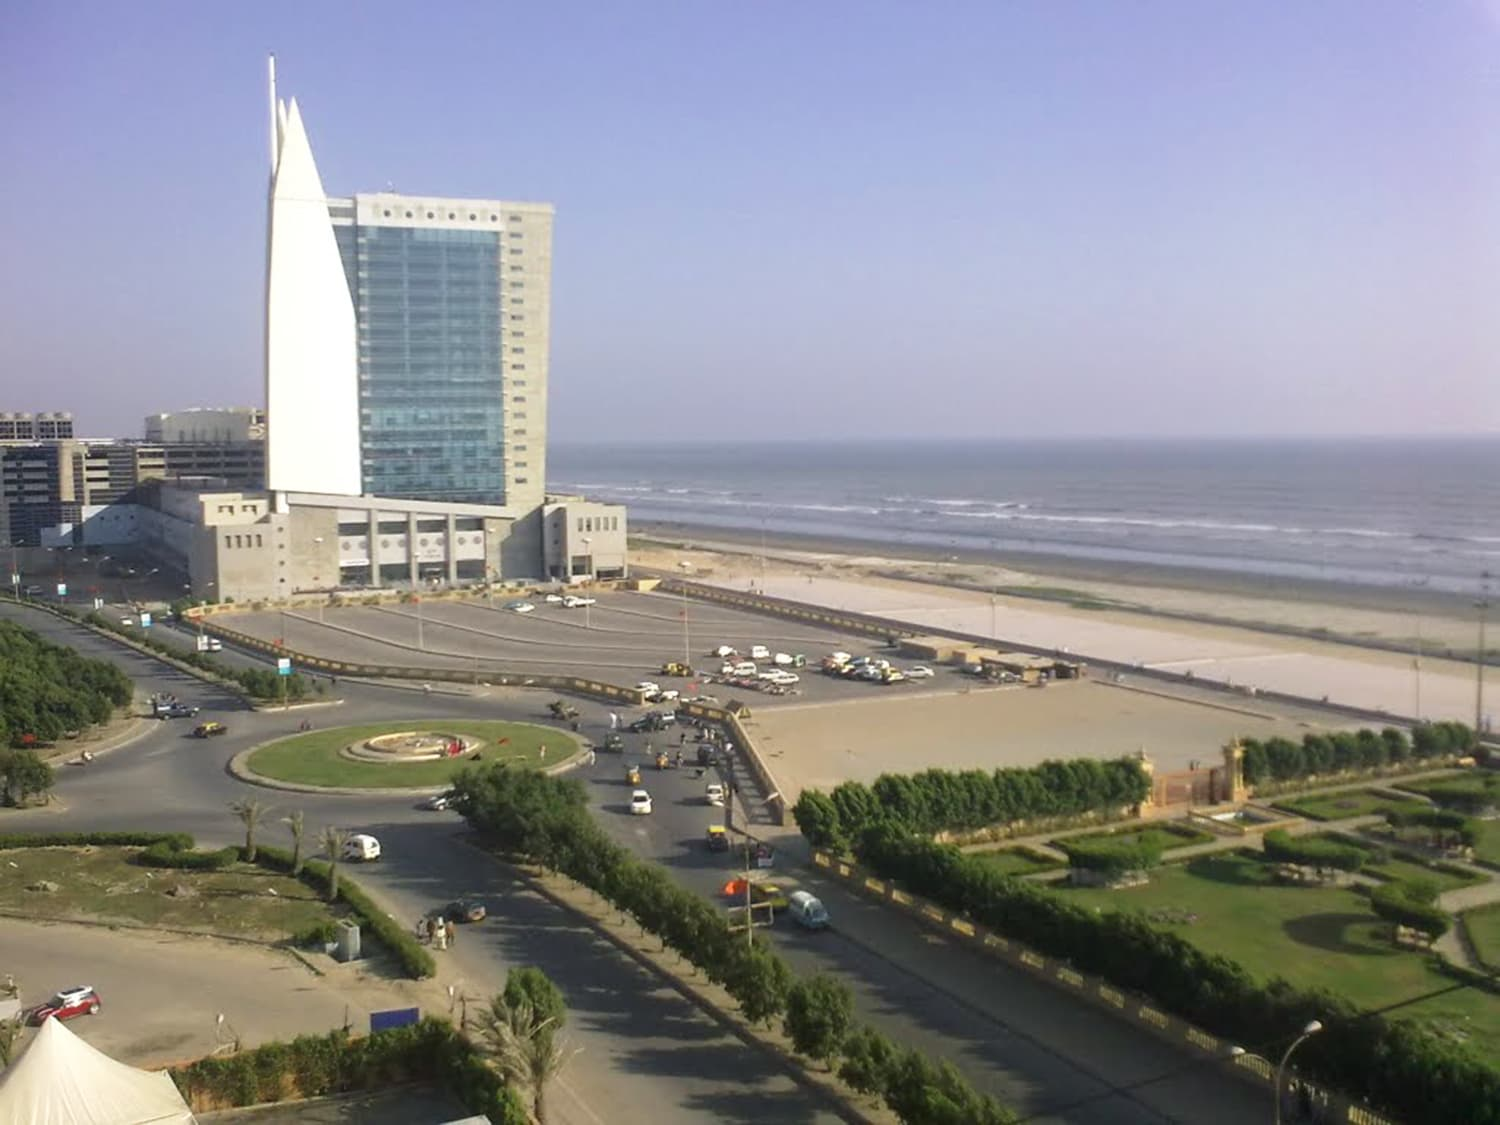 Karachi's Seaview area near the Clifton Beach in 2015.